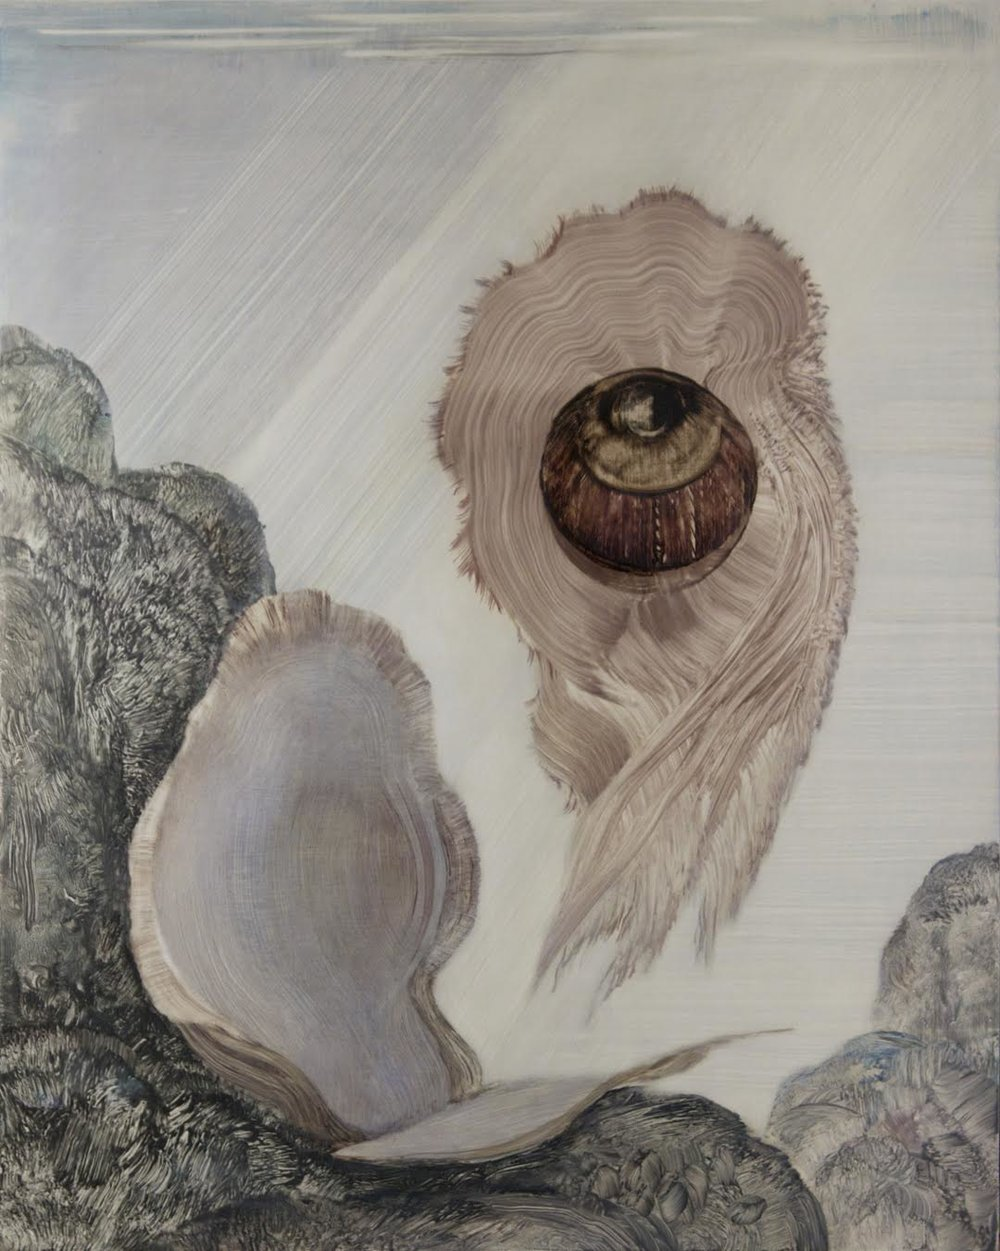 Shawn Spencer,  Escaped Mollusk,  2013, Oil on birch panel, 25h x 20w in.